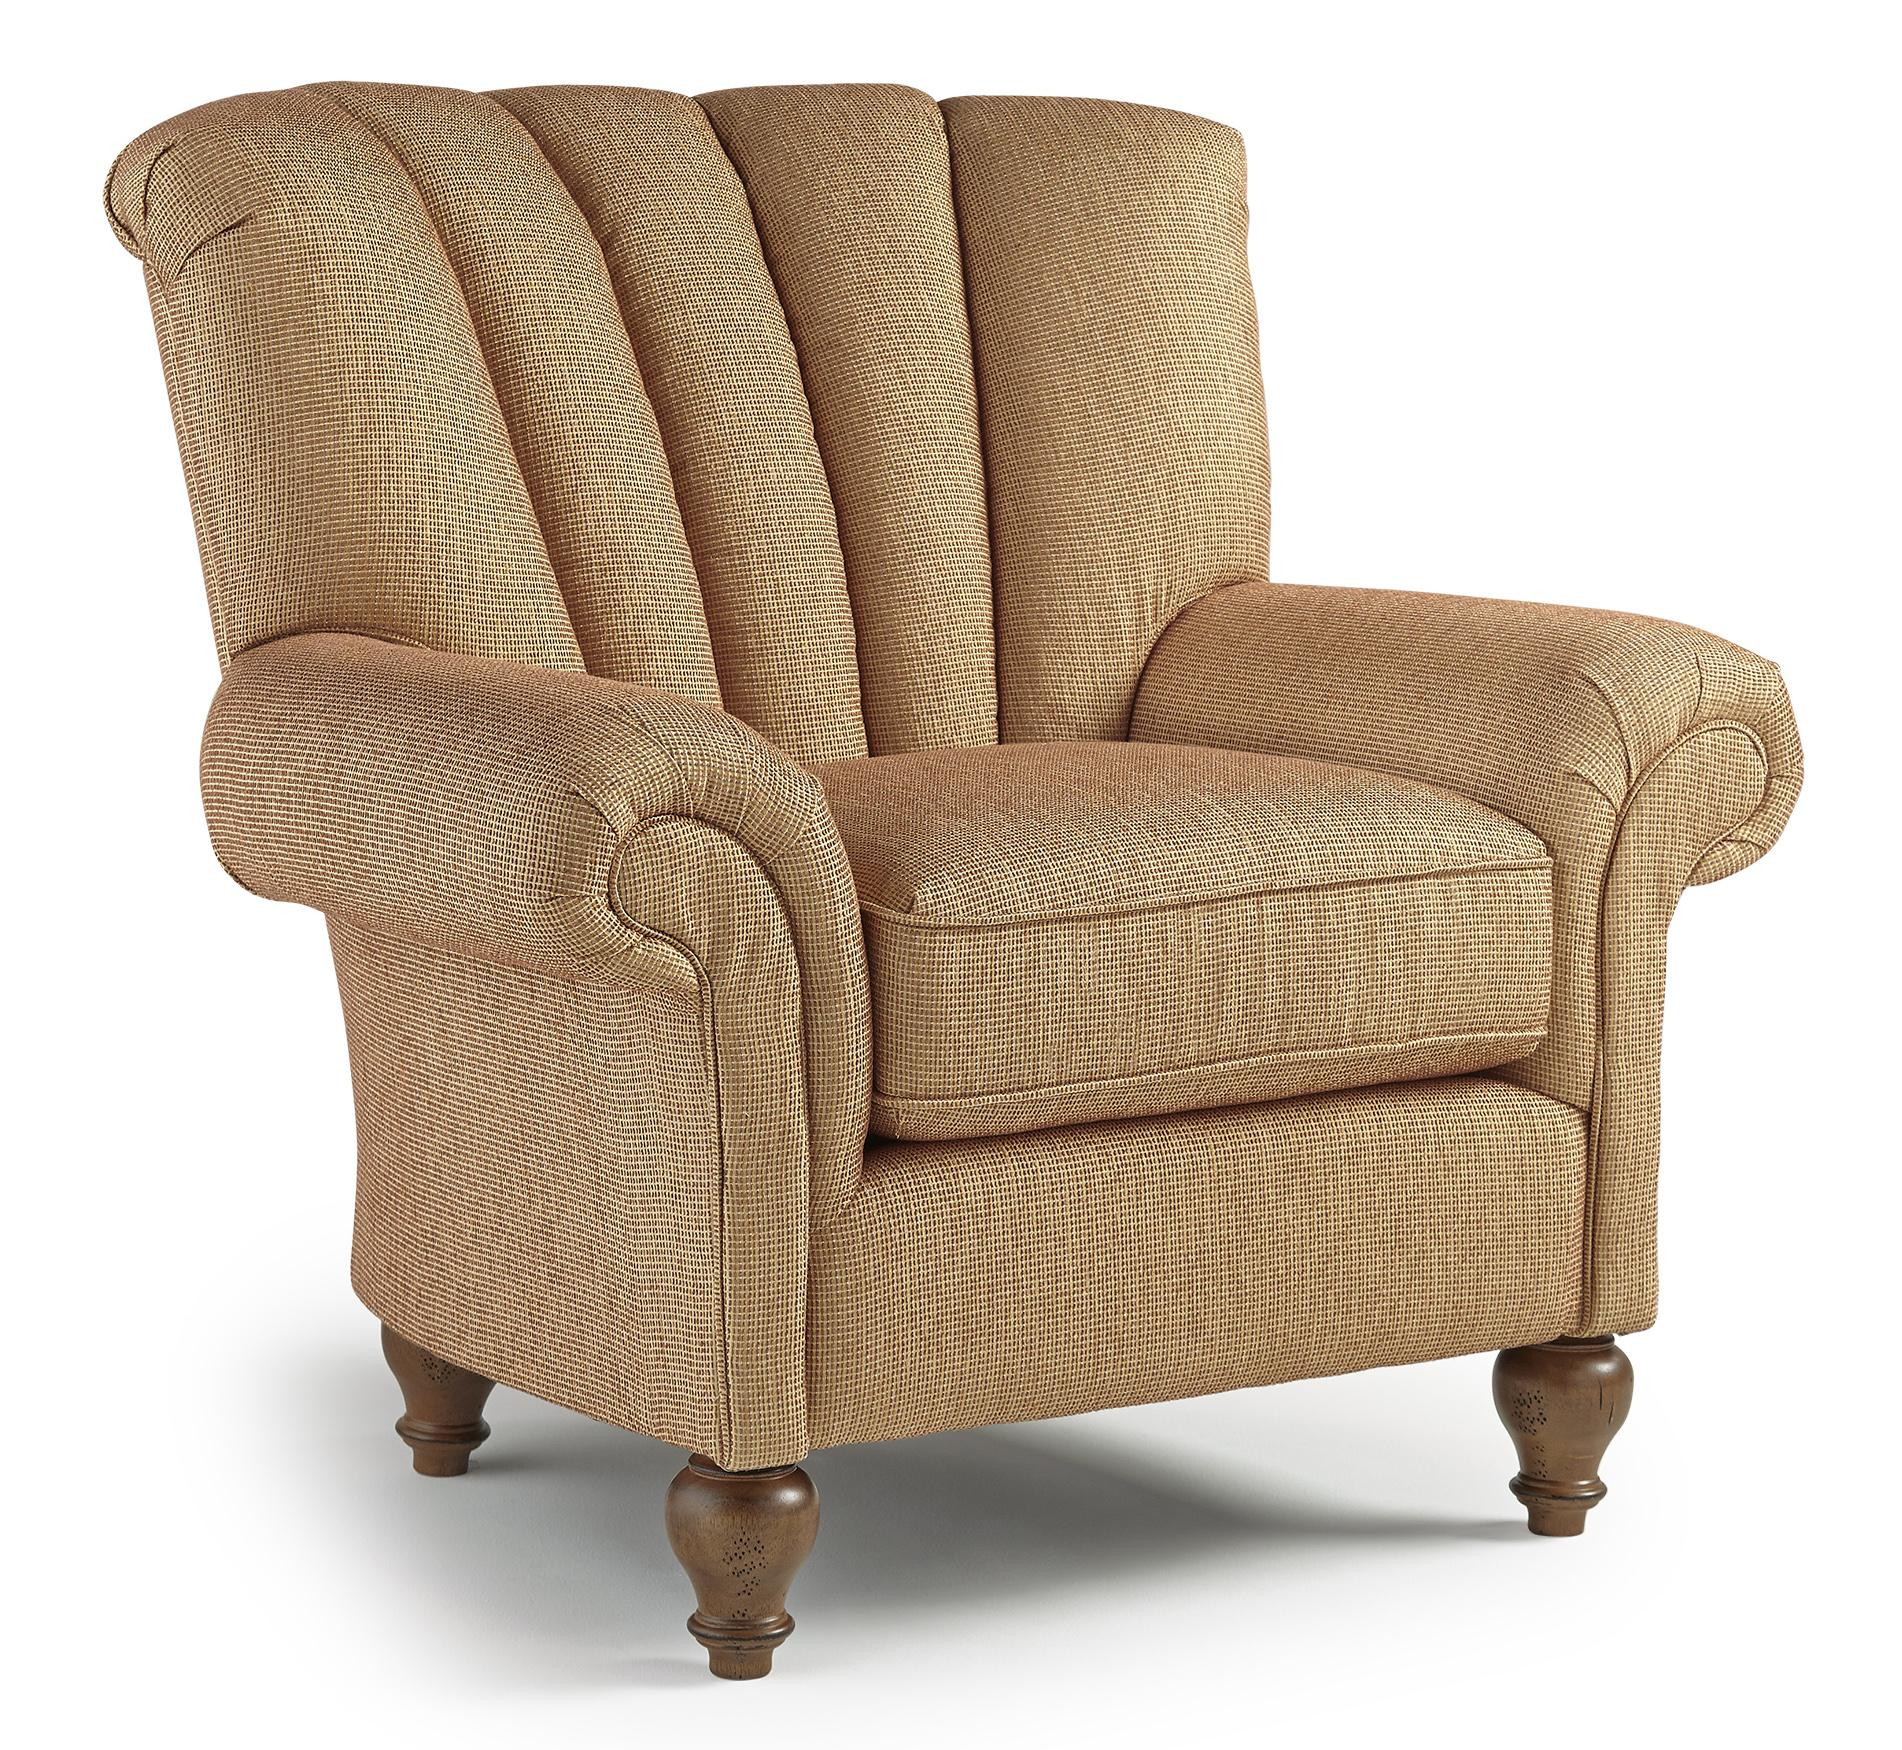 Best Home Furnishings Chairs - Club Marlow Club Chair - Item Number: 7020